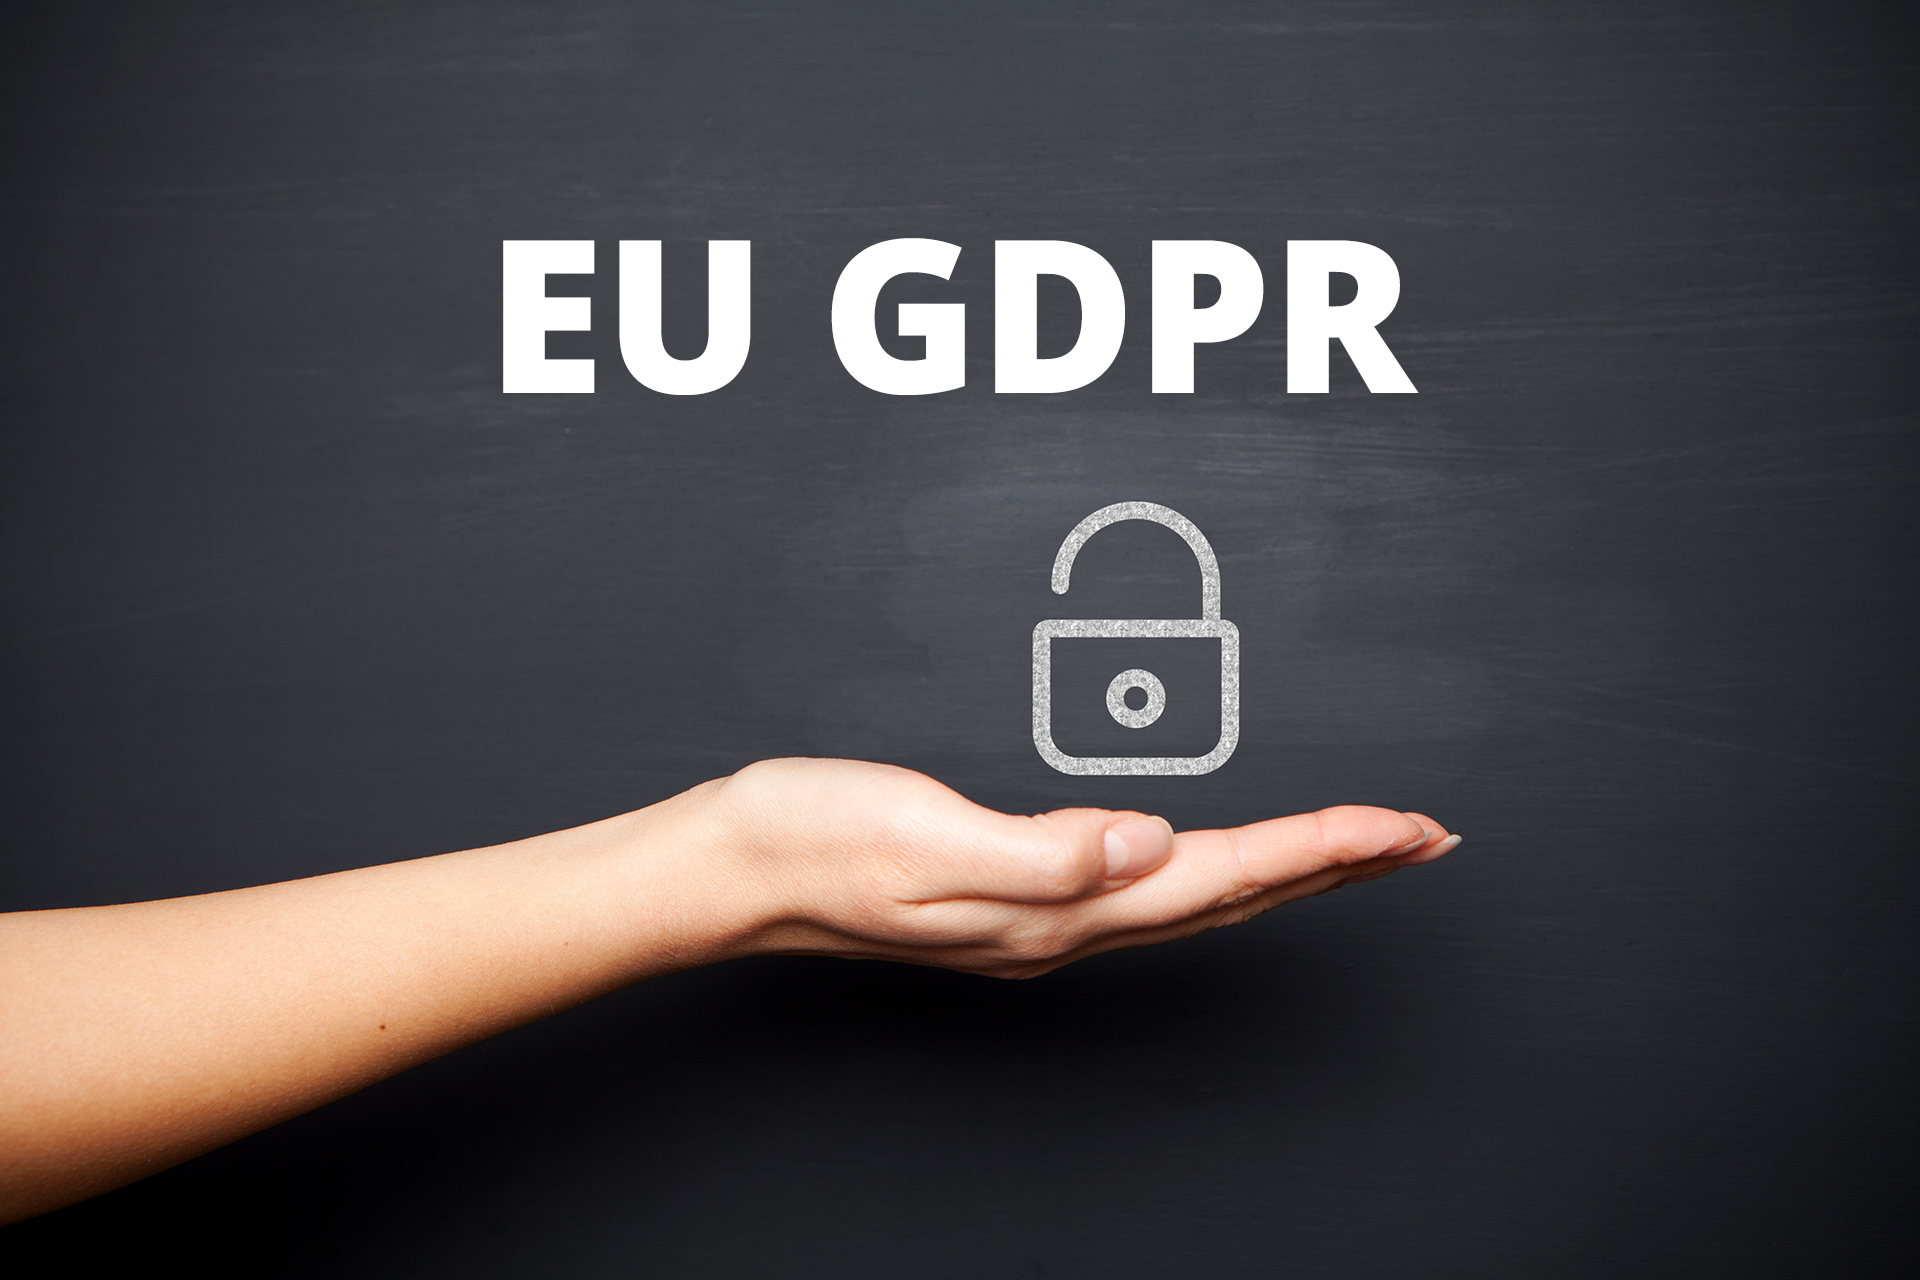 EU GDPR 1 - Data security